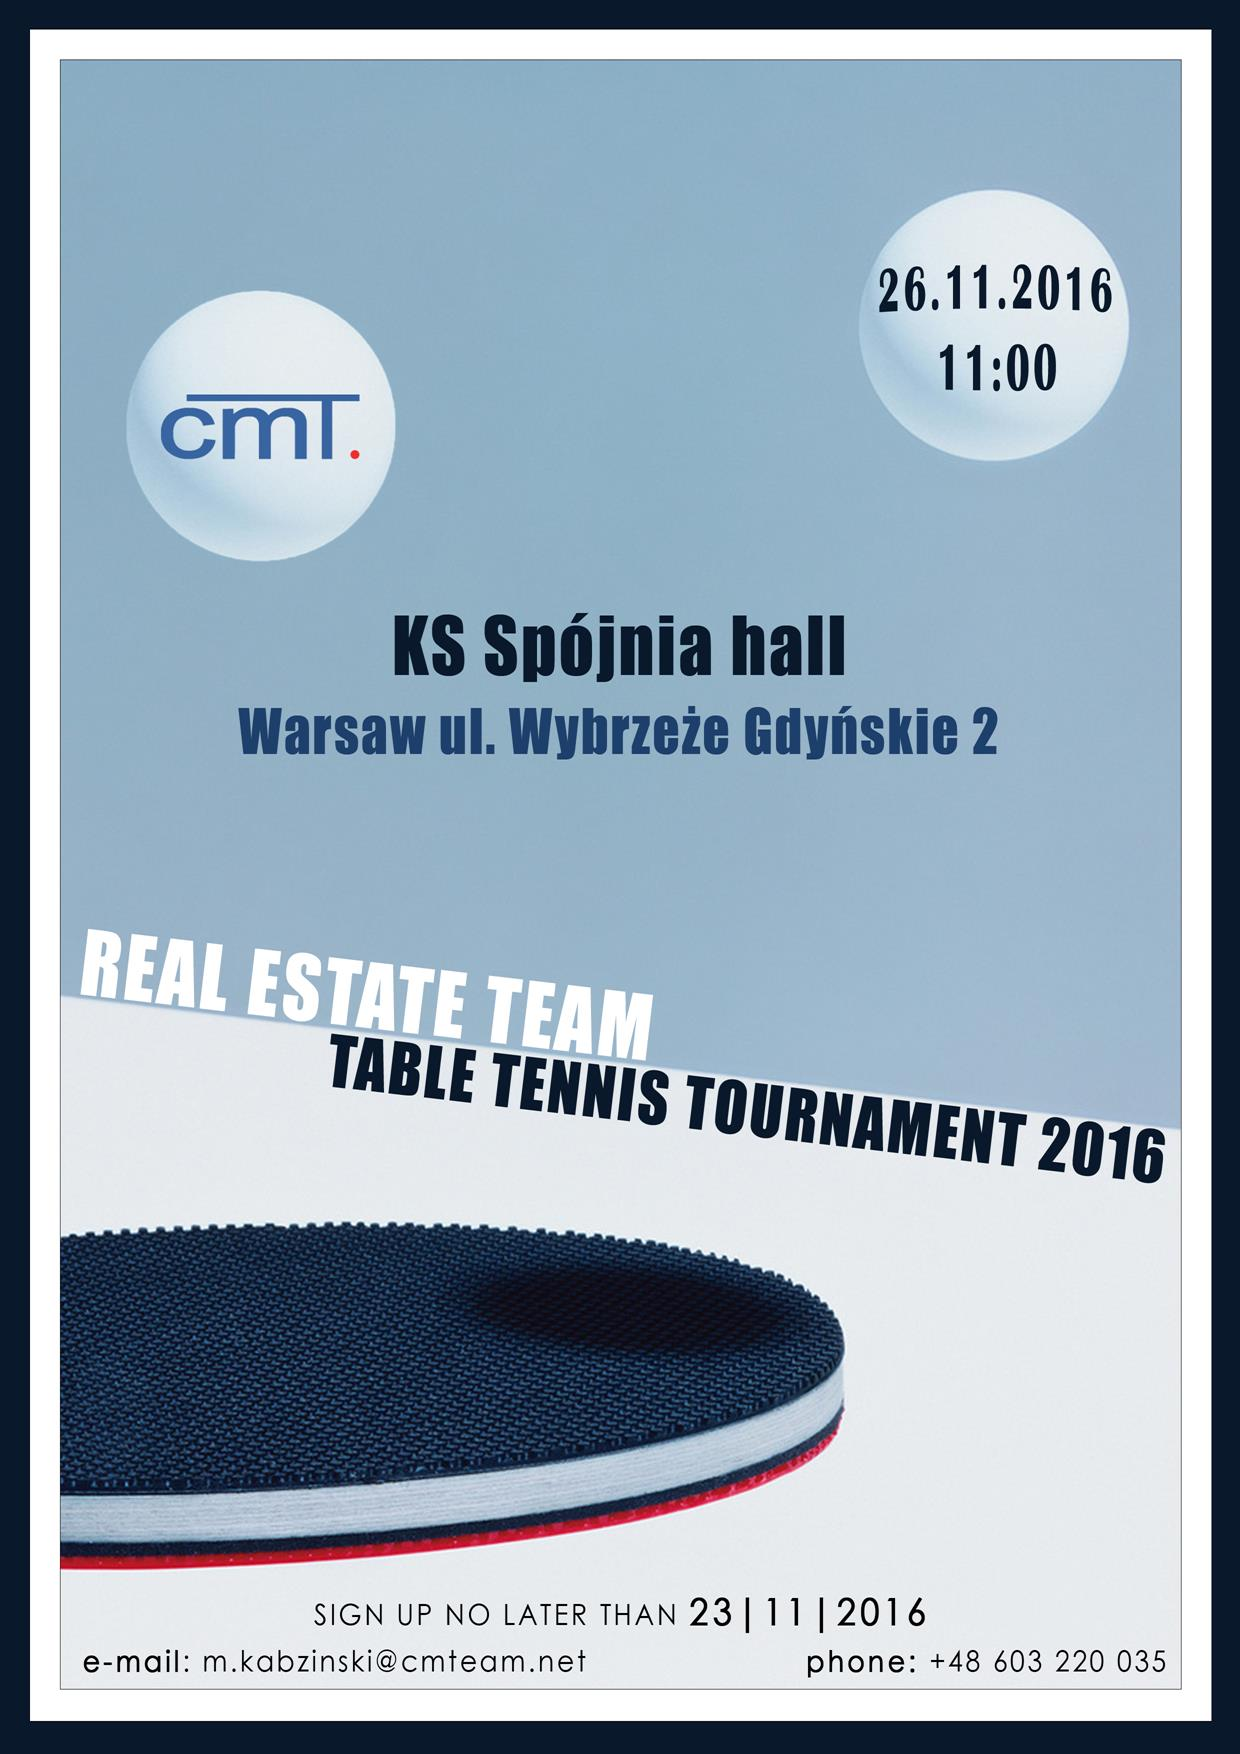 I edition Real Estate Team Table Tennis Tournament